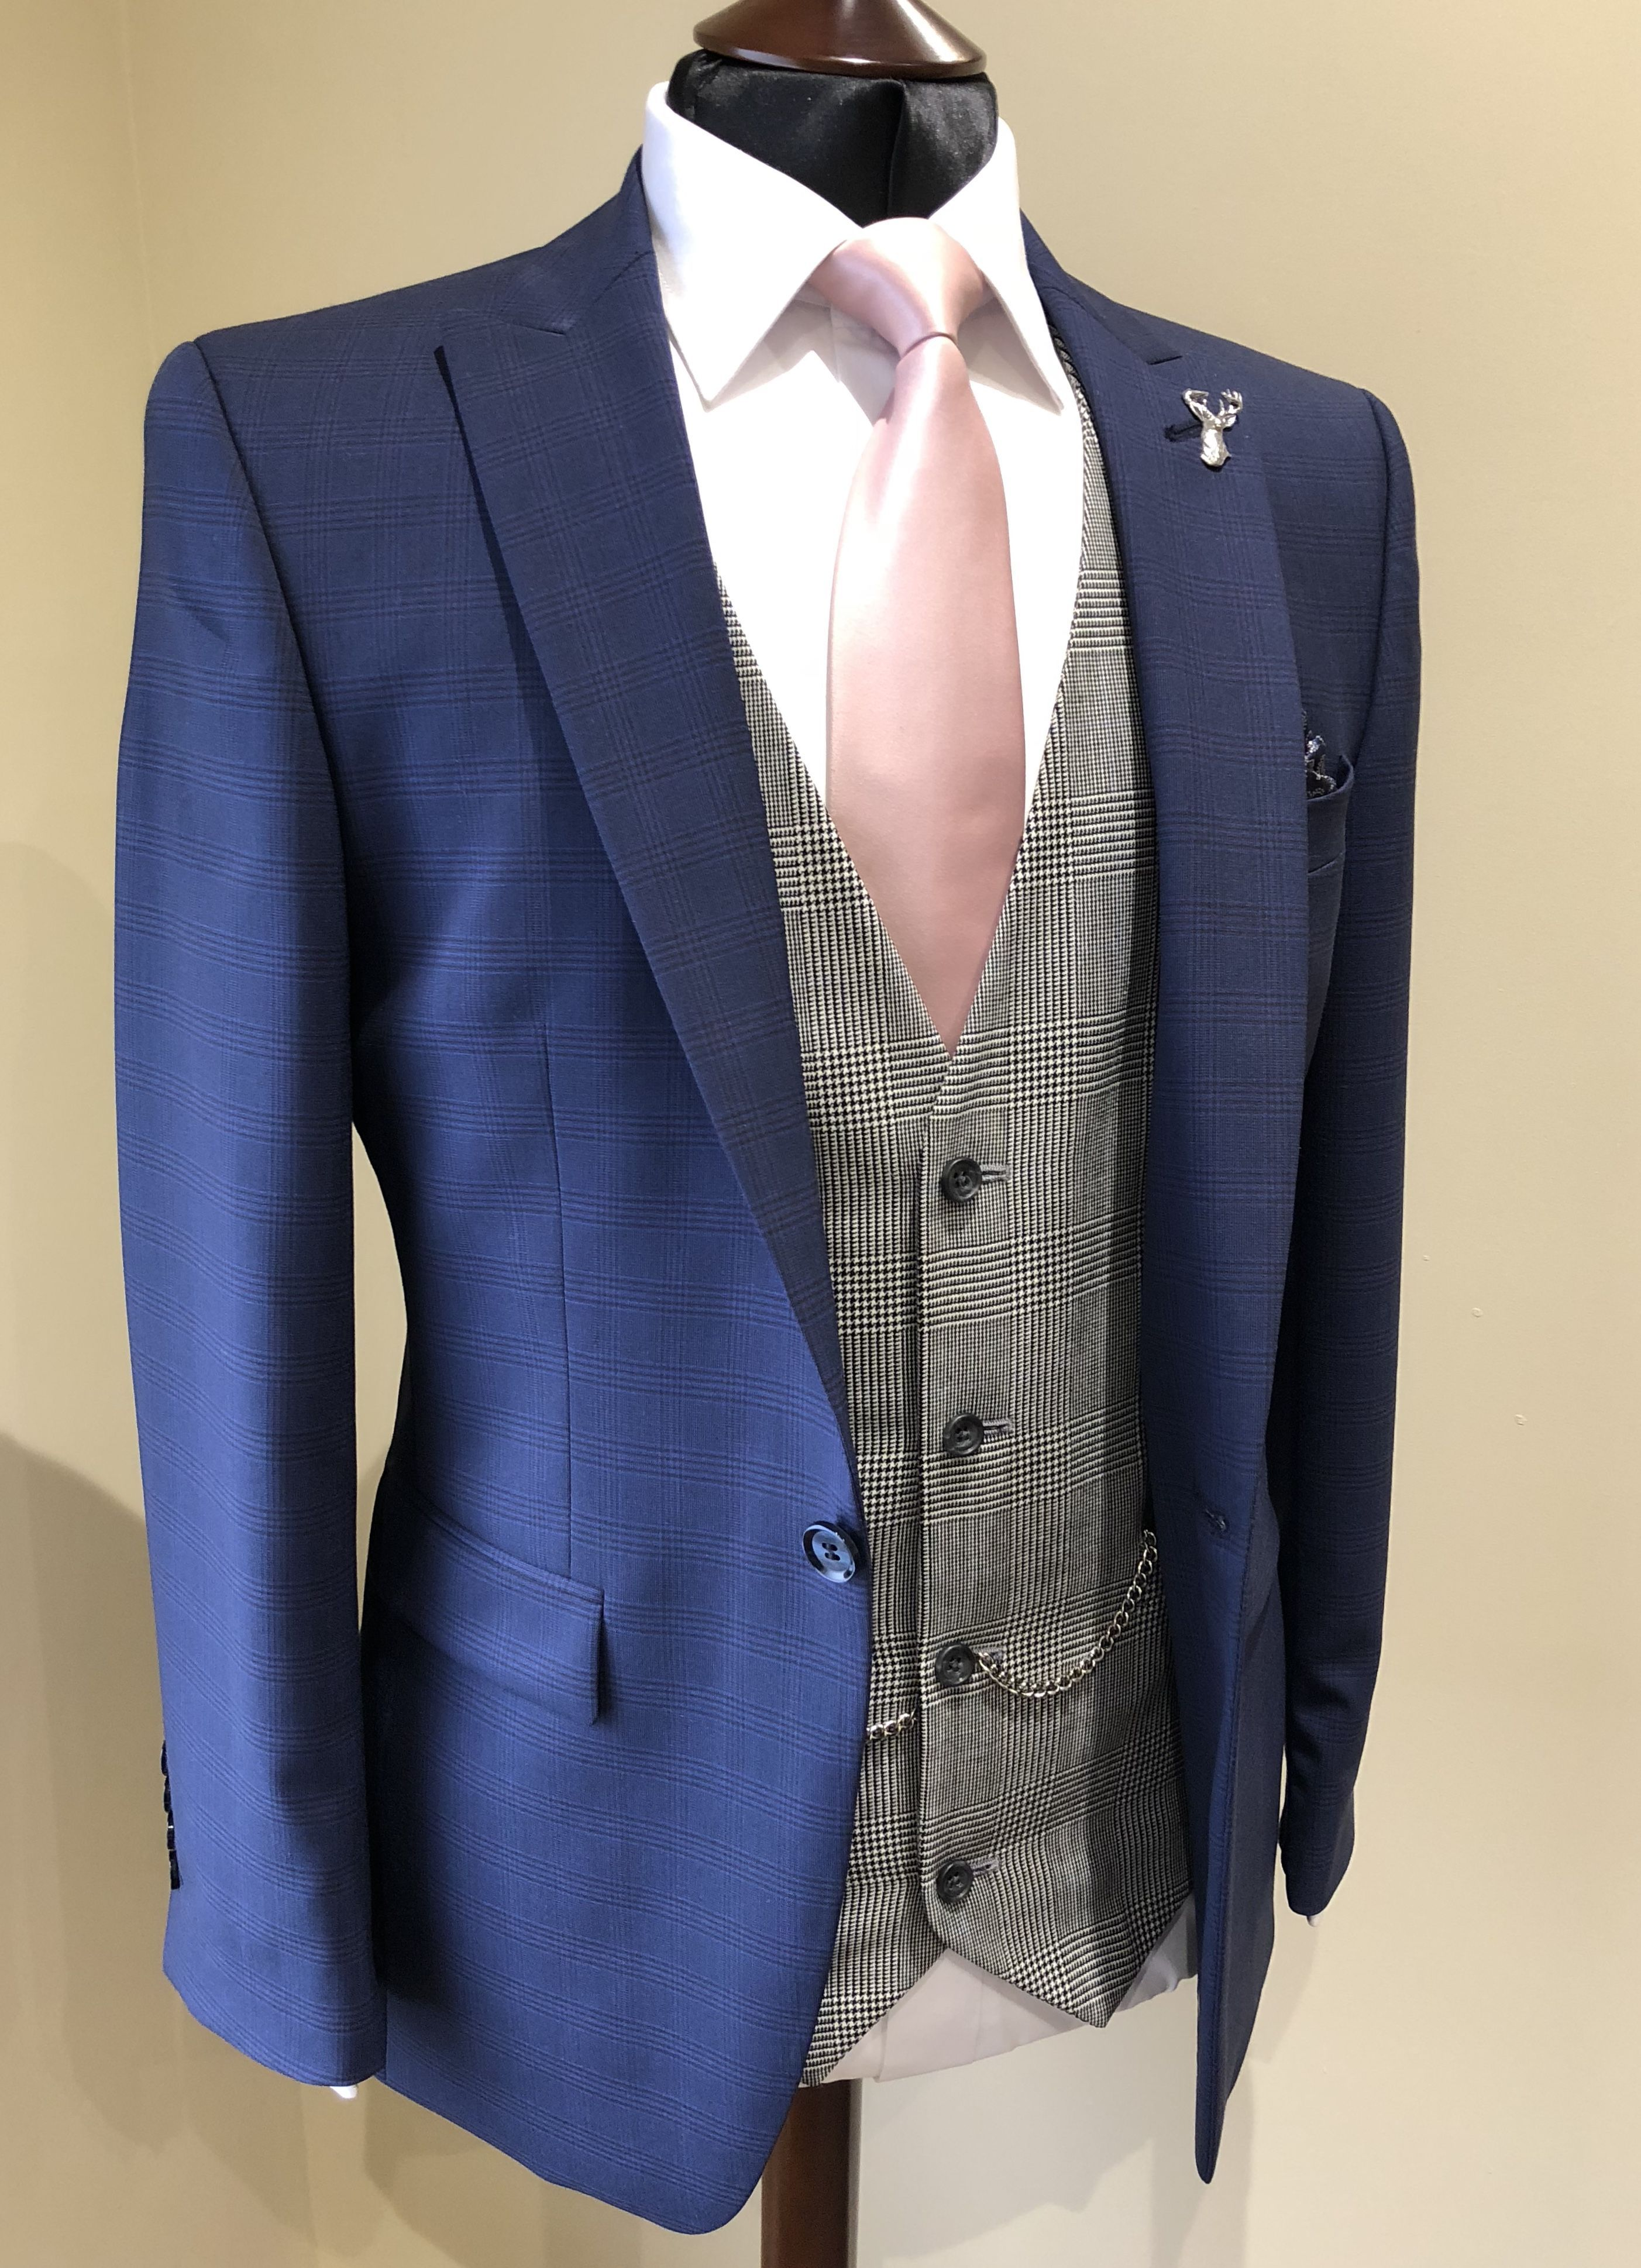 0c8b22f16a0 Slim fit blue check wedding suit